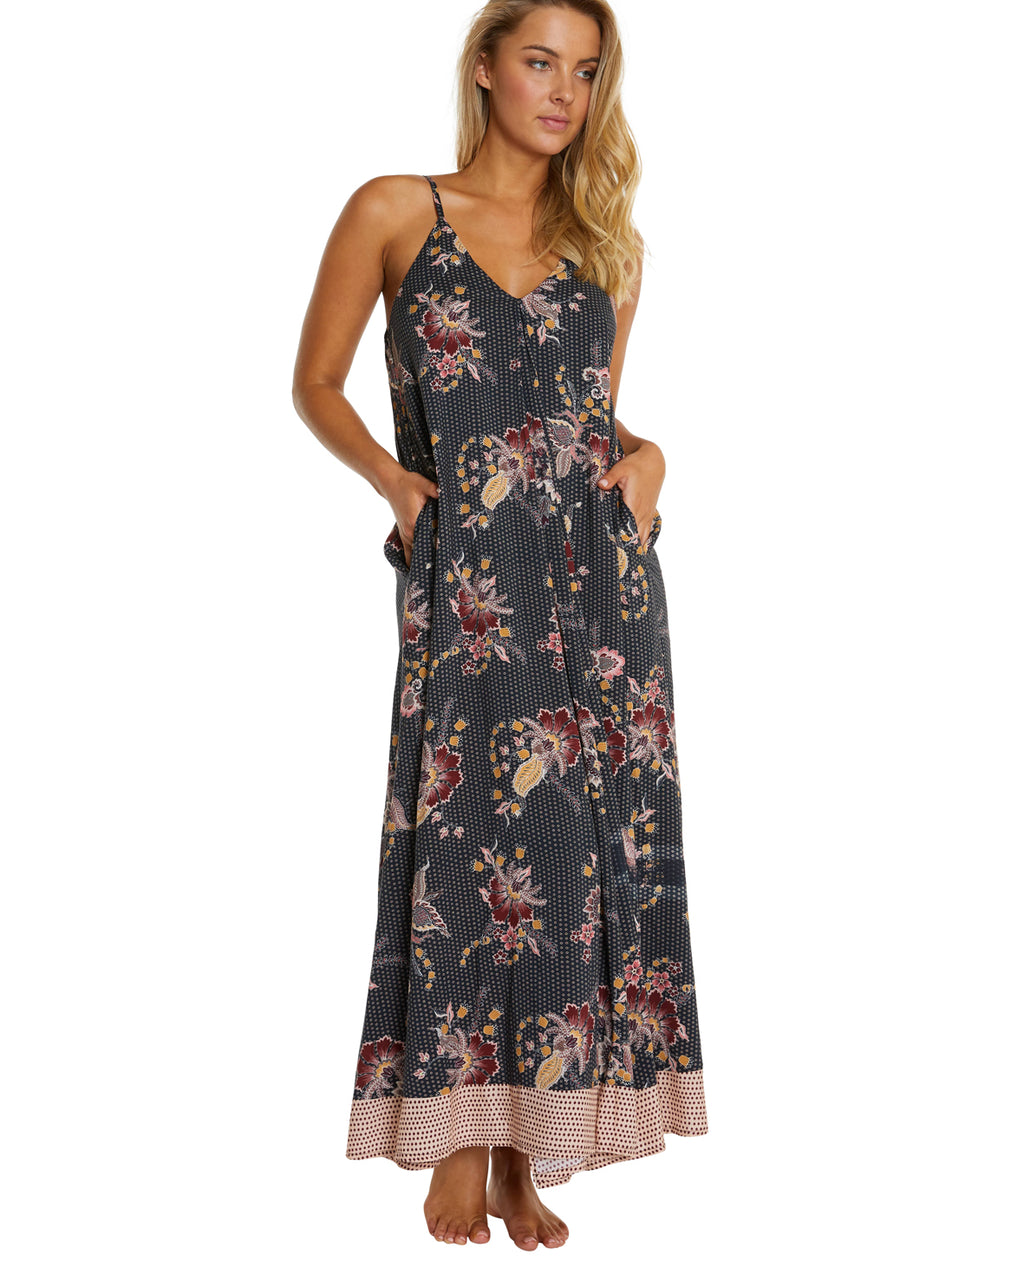 GILI ISLANDS MAXI DRESS